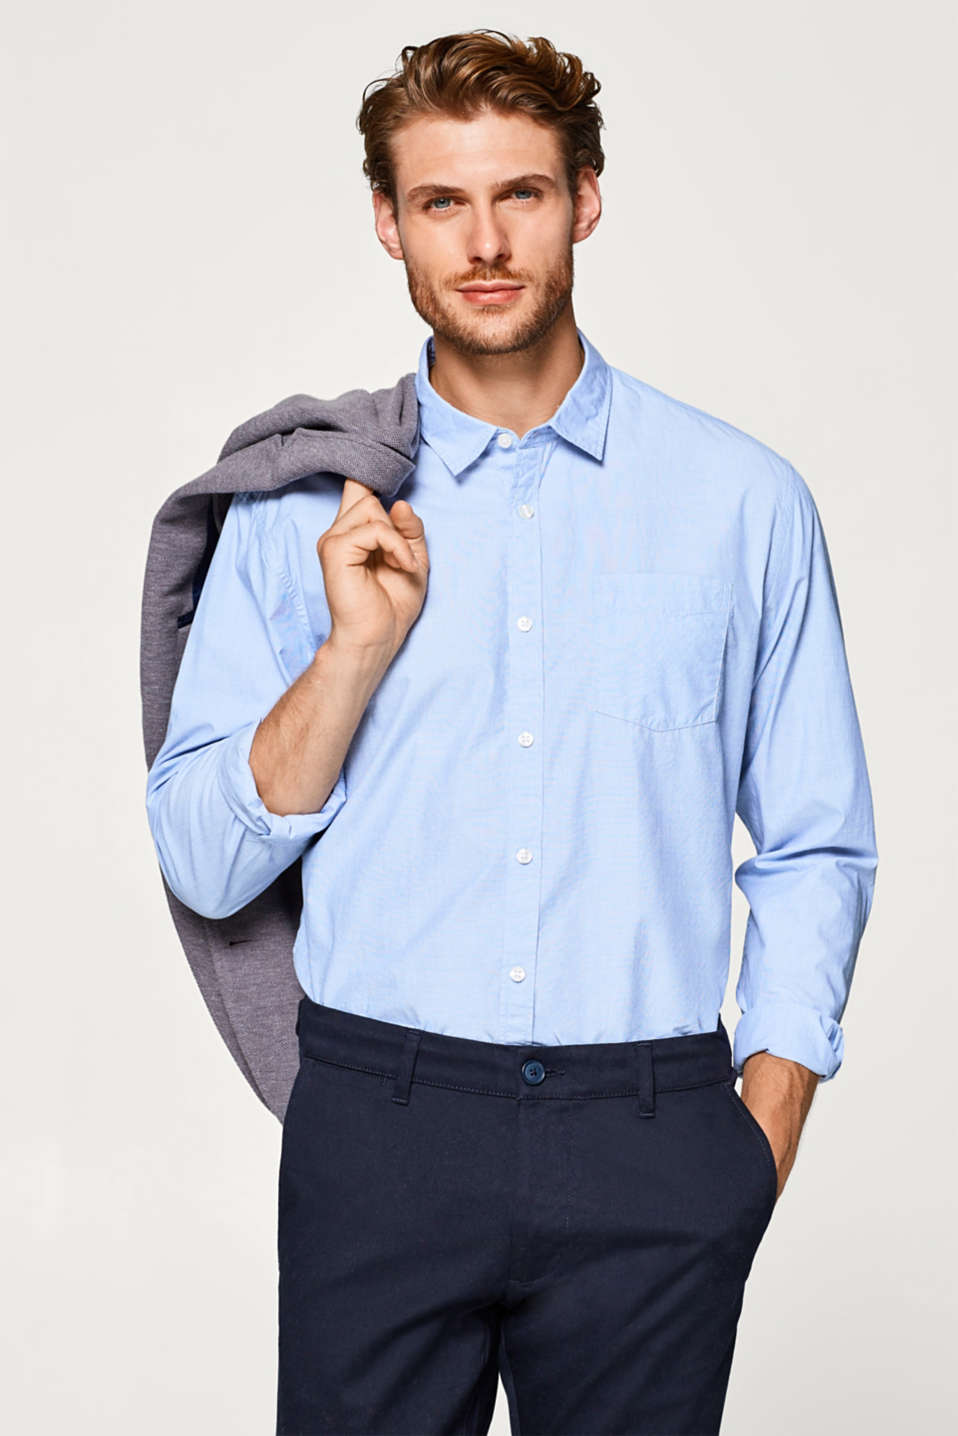 Esprit - Shirt made of end-on-end fabric, 100% cotton